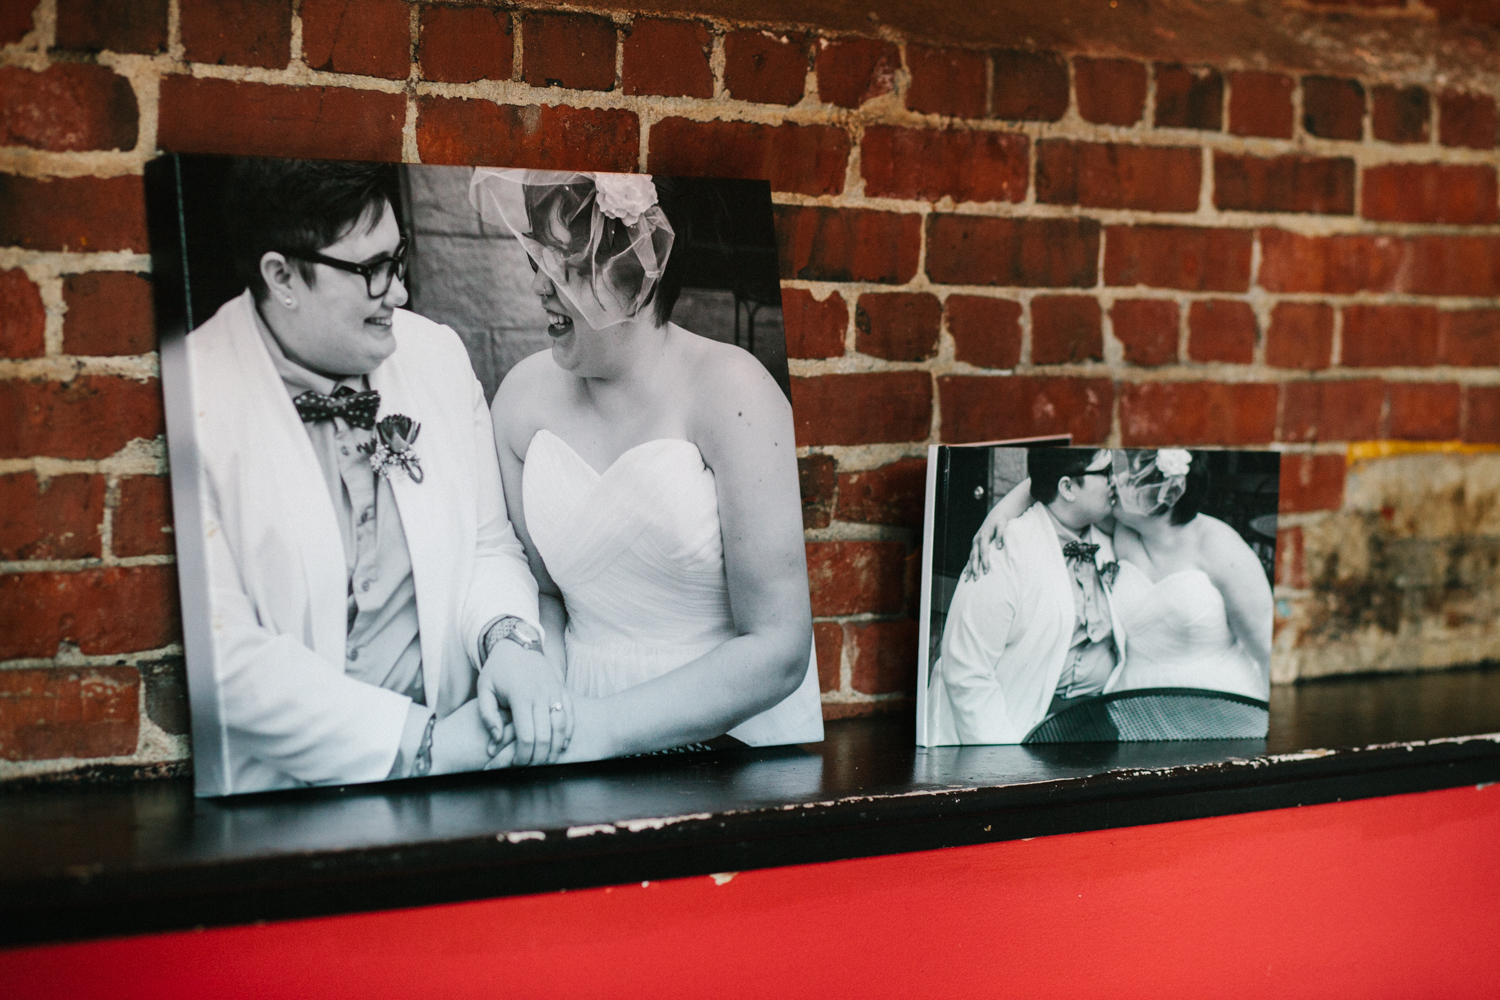 As soon as I walked in, I could see where they had all my images from their ceremony! They had printed and matted one of the pictures that they set right by the entryway, so that all of their guests could sign the matte. They even had a projector showing a slideshow of a bunch of the pictures! So cool!